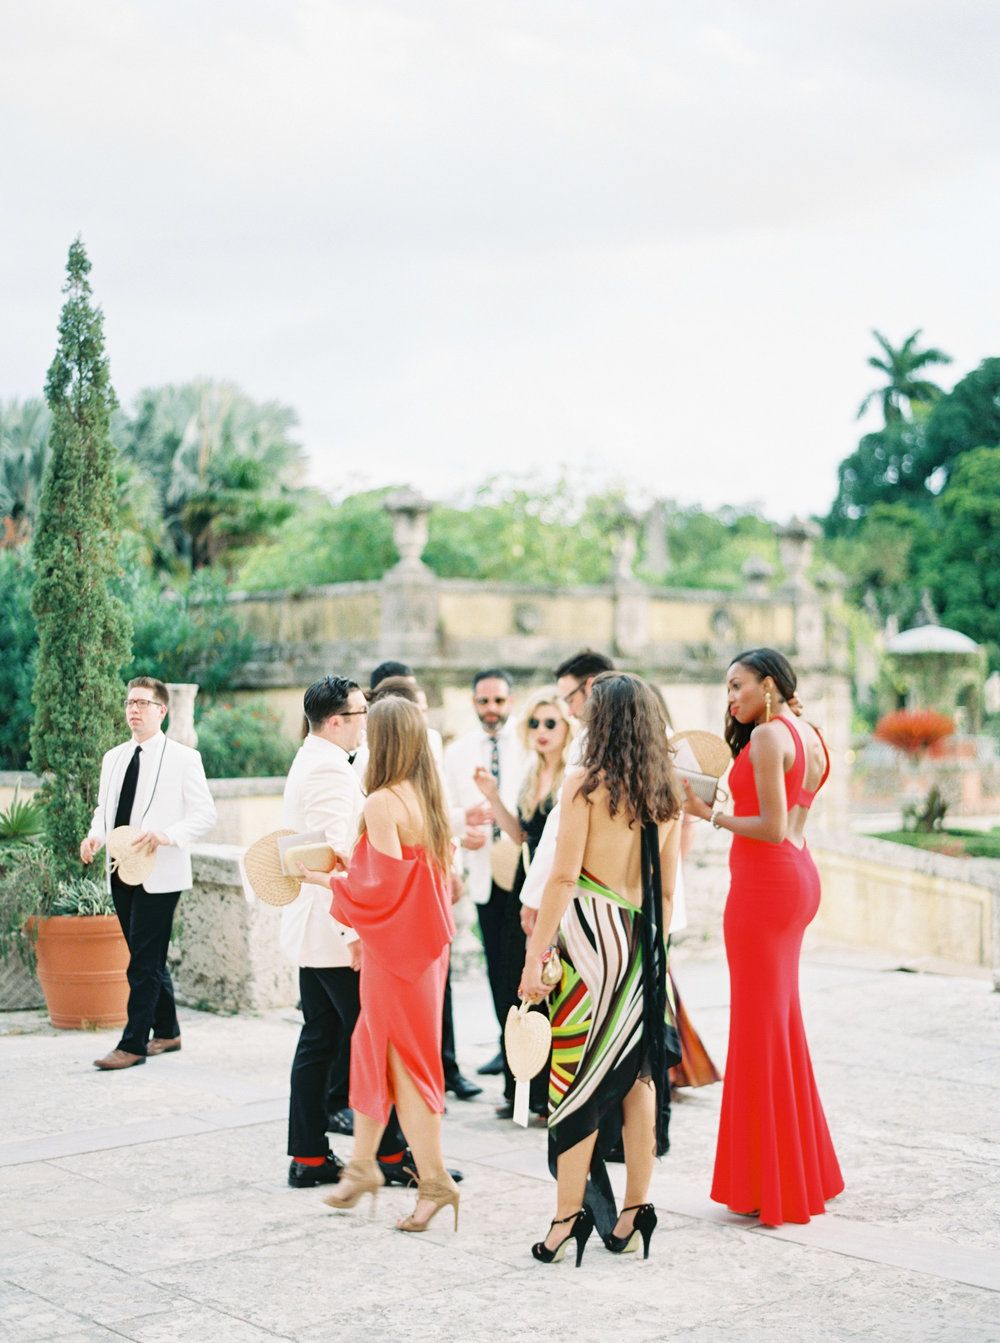 vizcaya-miami-destination-film-wedding-photographer-4444_07.jpg